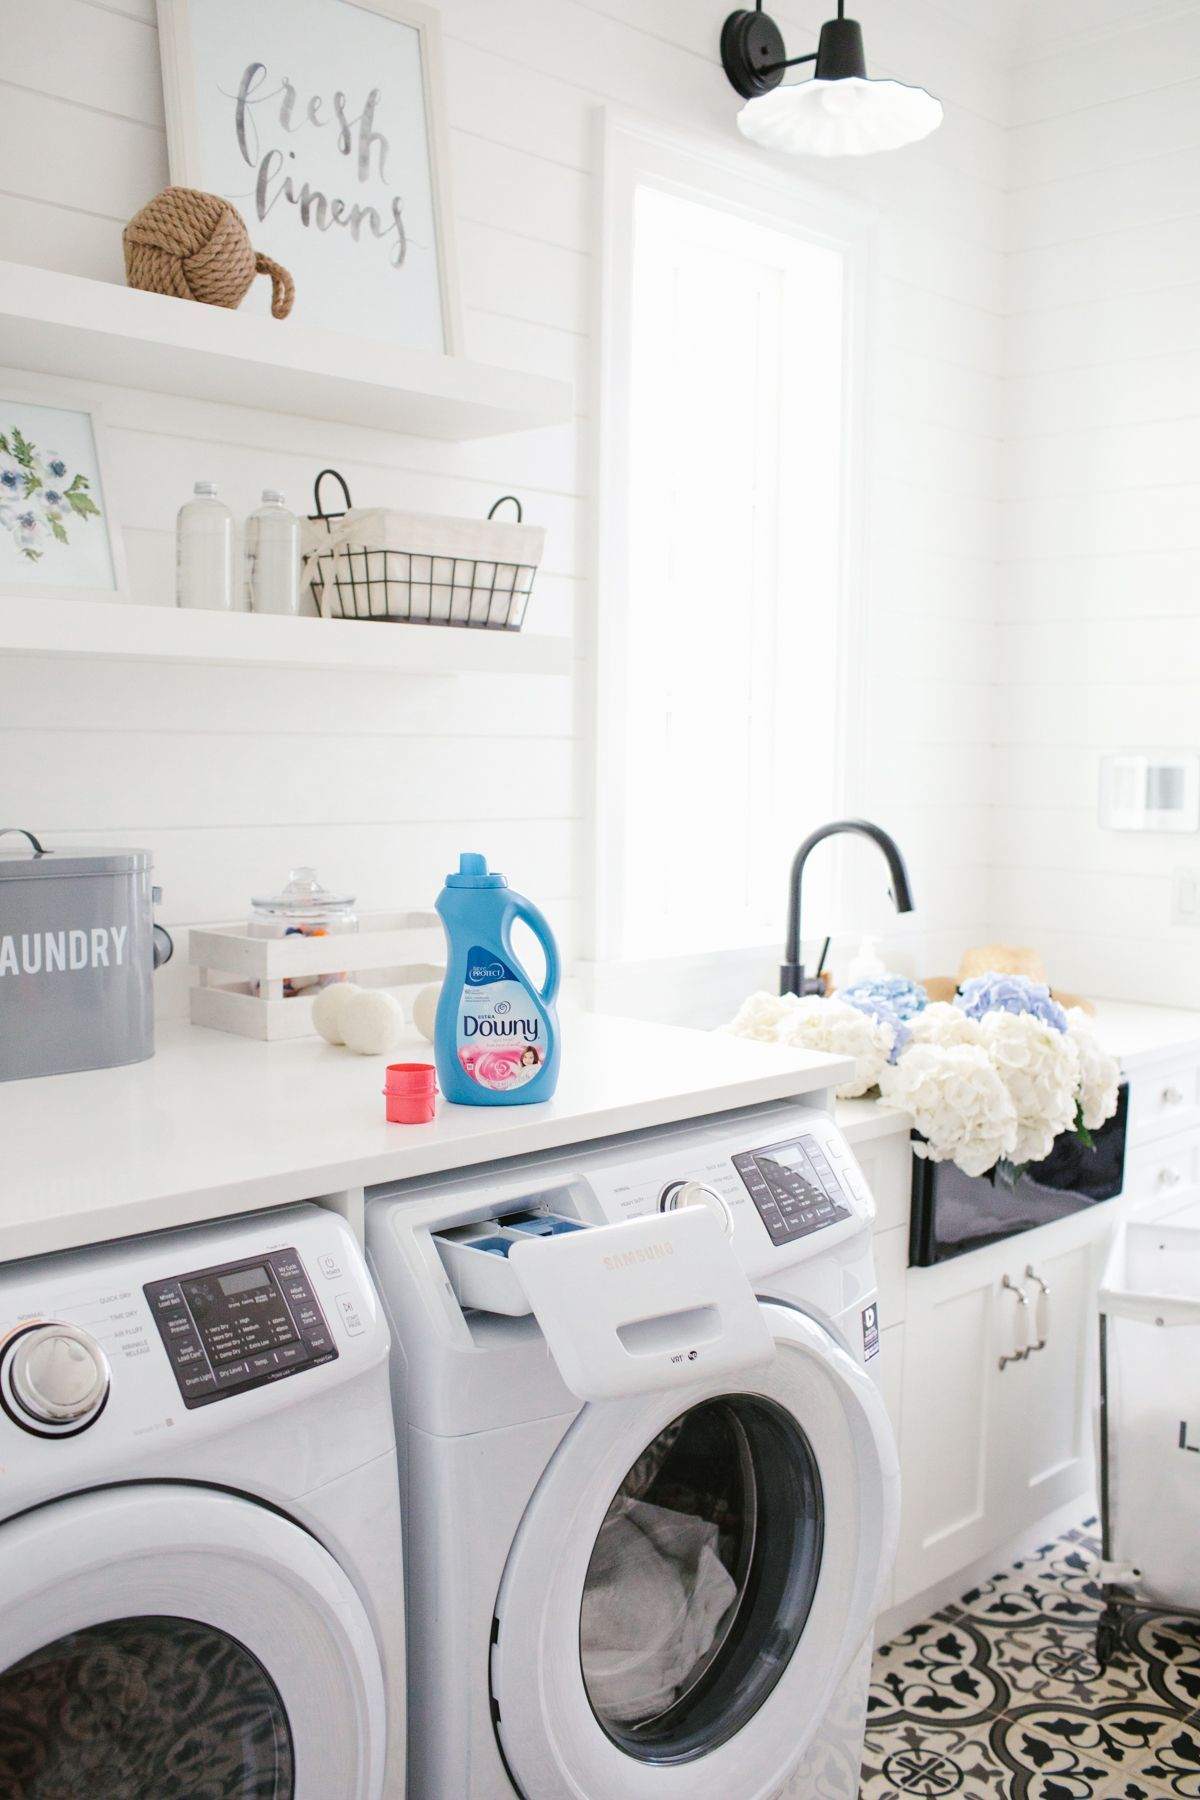 50 Outstanding Black And White Laundry Room Ideas With Images